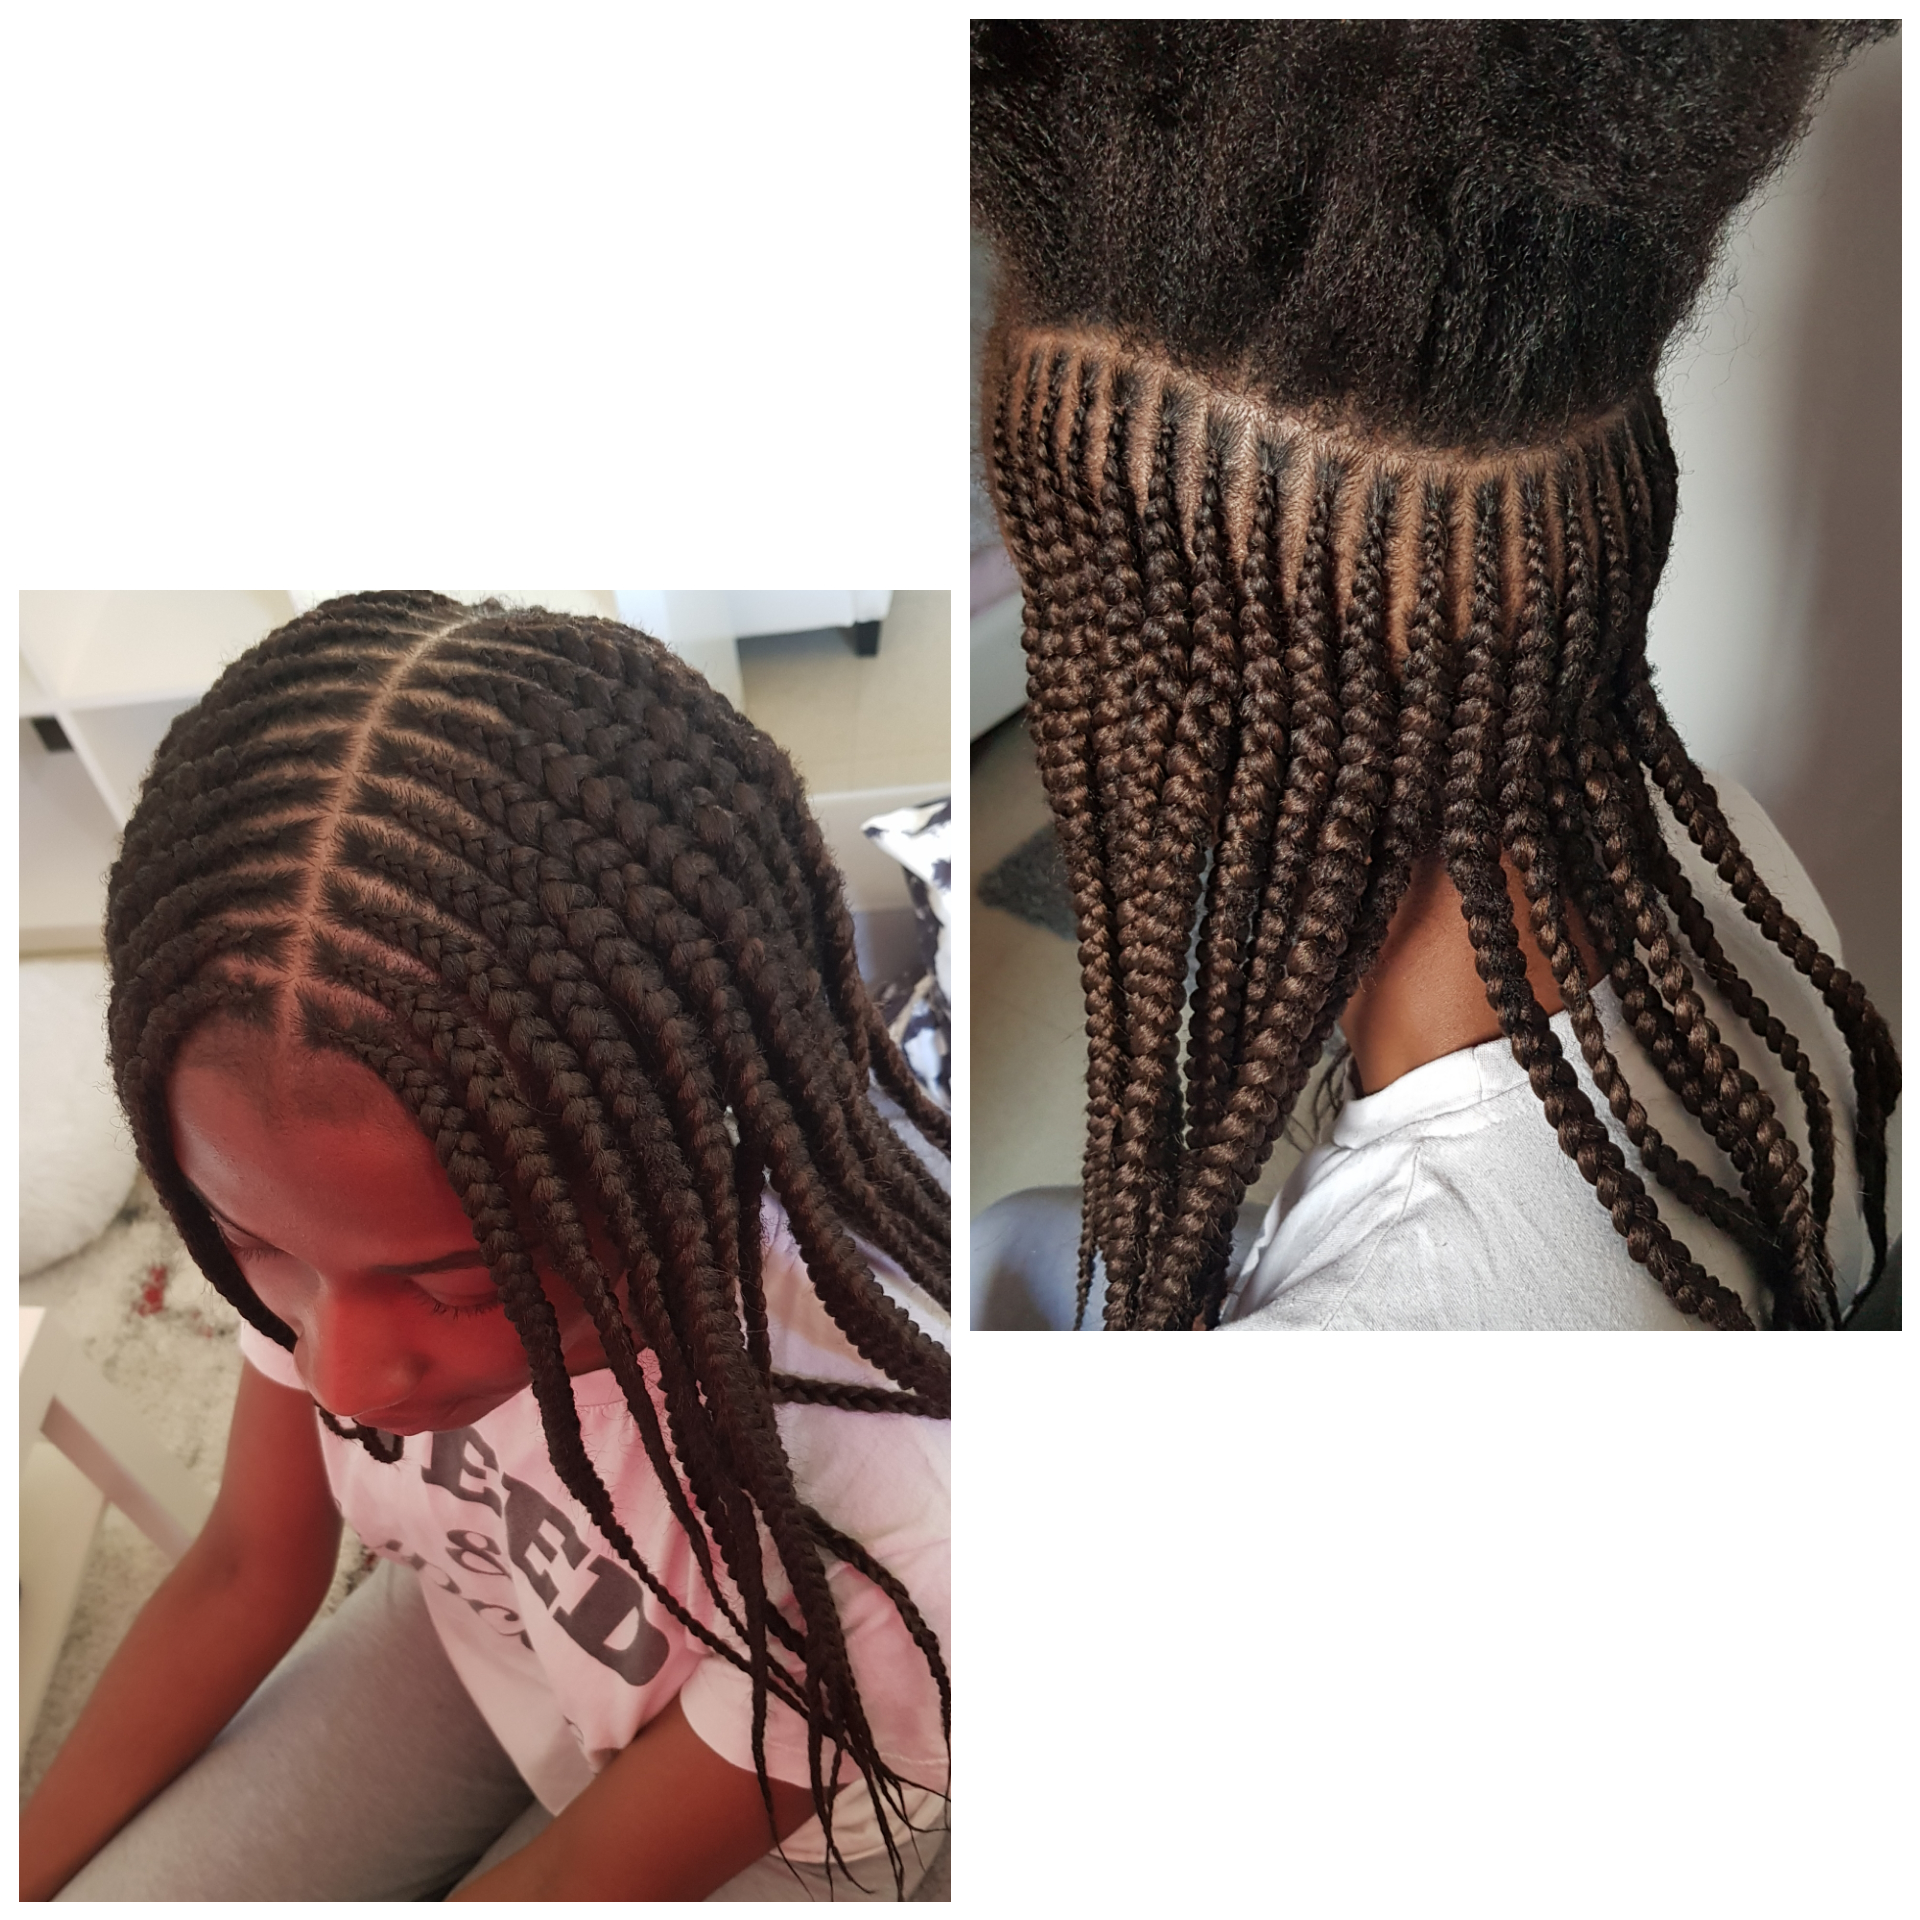 salon de coiffure afro tresse tresses box braids crochet braids vanilles tissages paris 75 77 78 91 92 93 94 95 VEDSAAGY